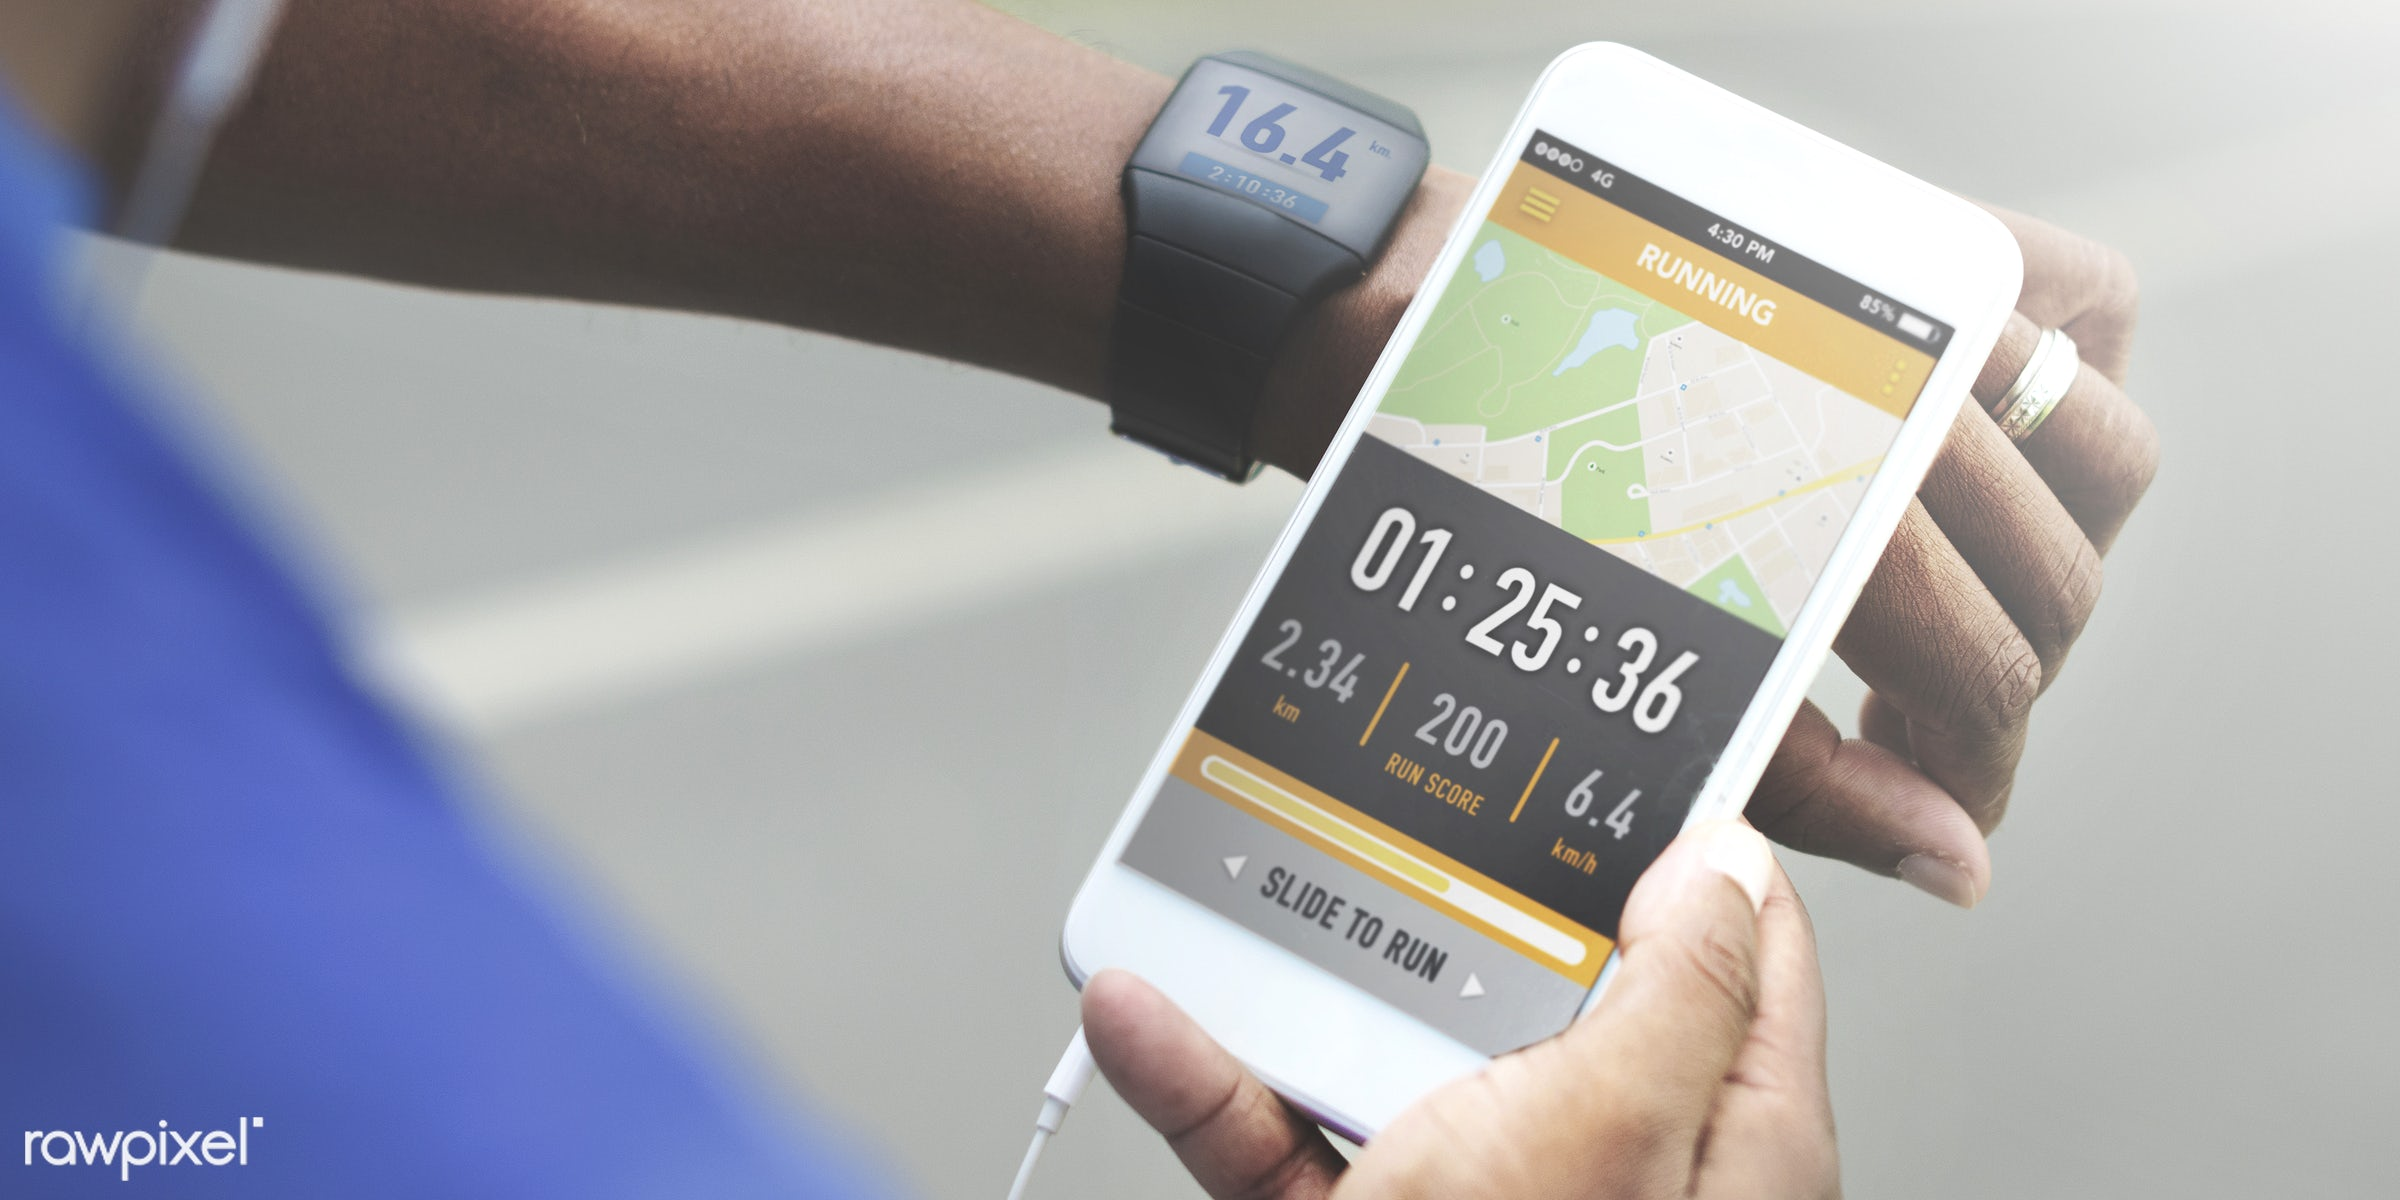 Man checking distance on smartphone - app, fitness, smartphone, active, activity, application, athlete, body building,...